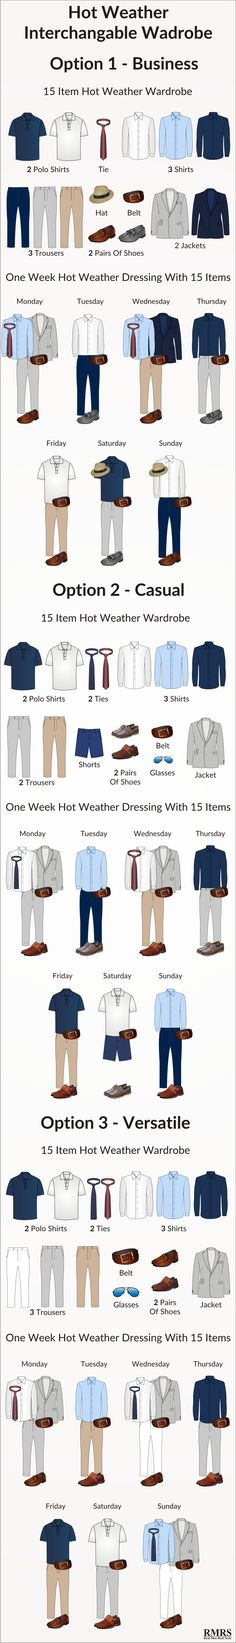 New infographic! A complete guide to the must-haves of men's summer style